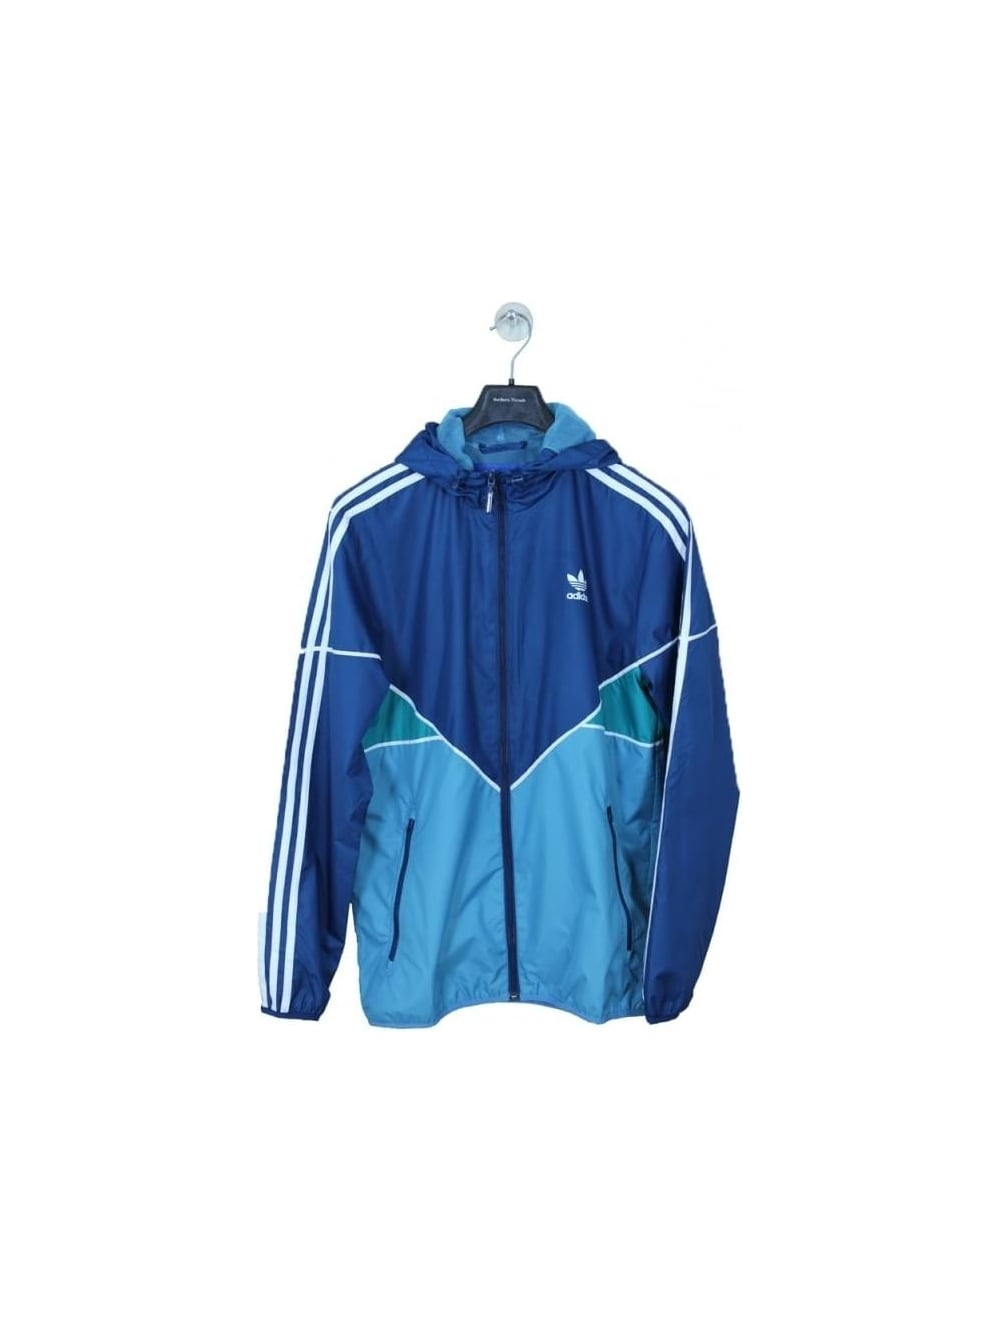 413aedc21d86 adidas Colorado Windbreaker in Blue - Northern Threads